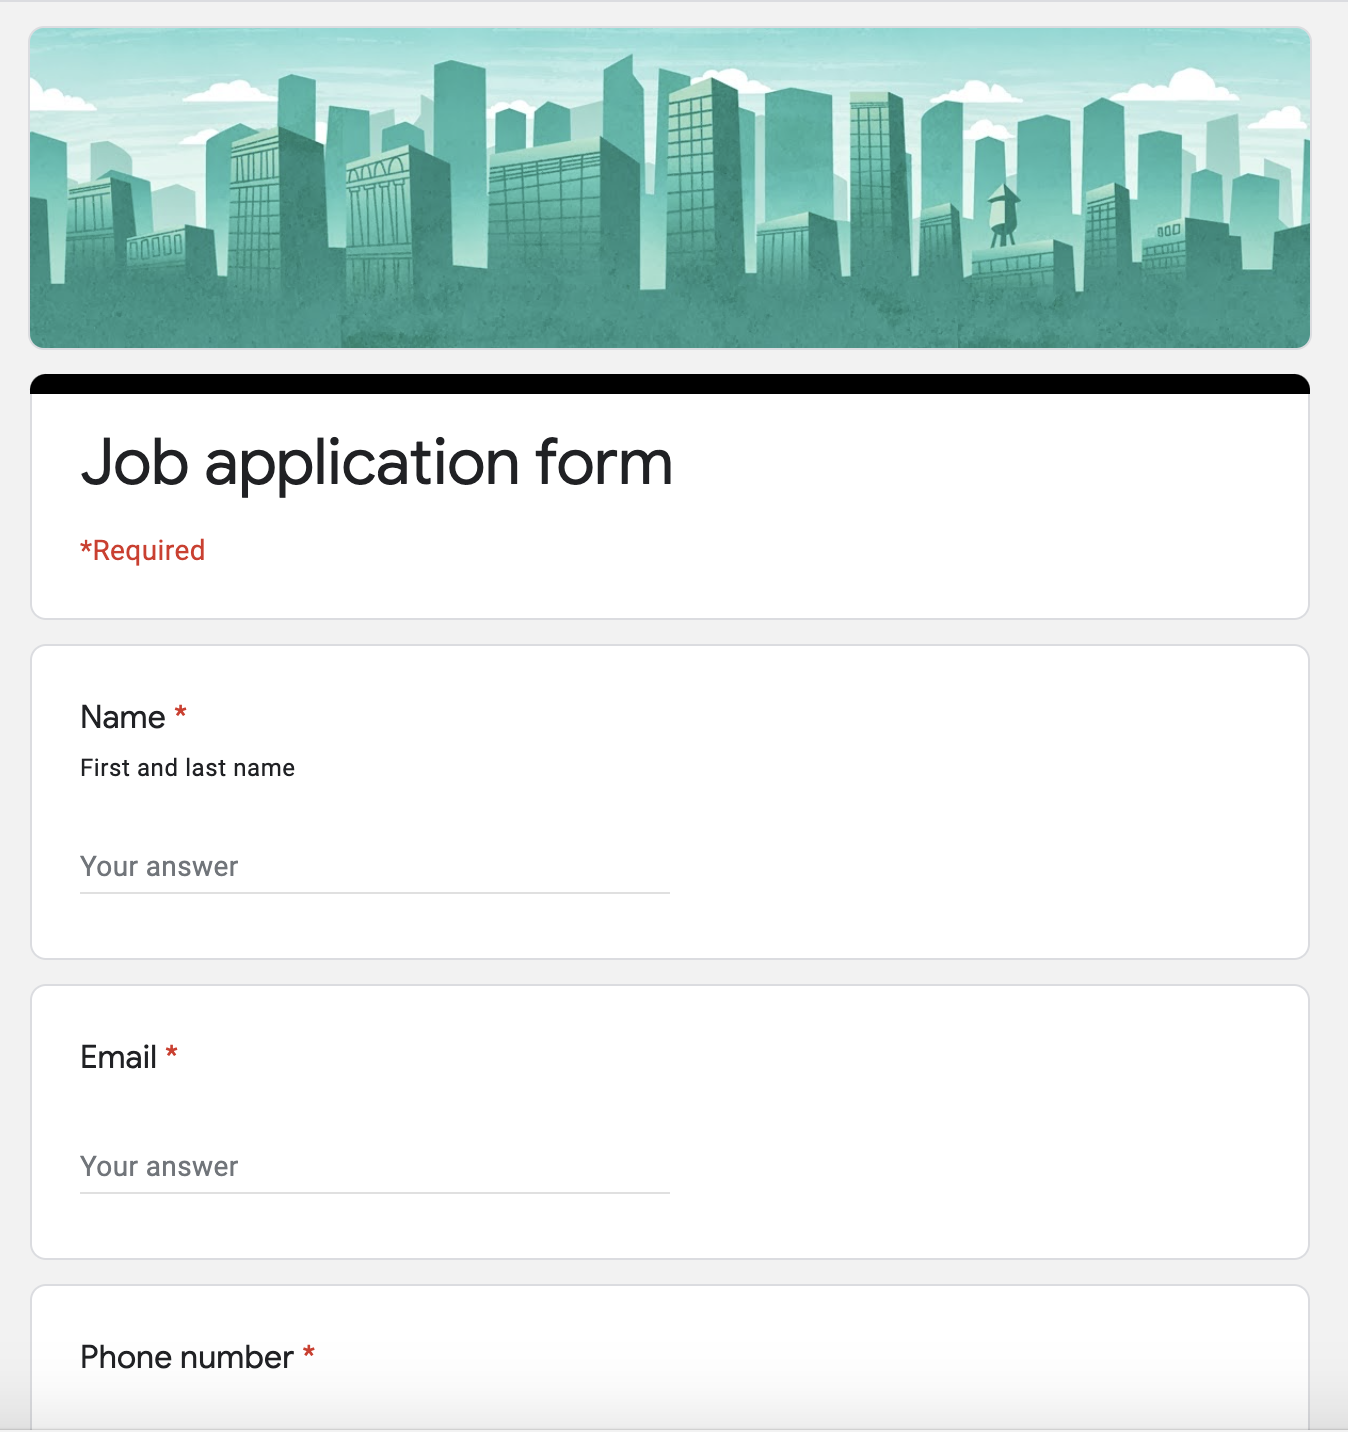 Job Application form with Google Forms